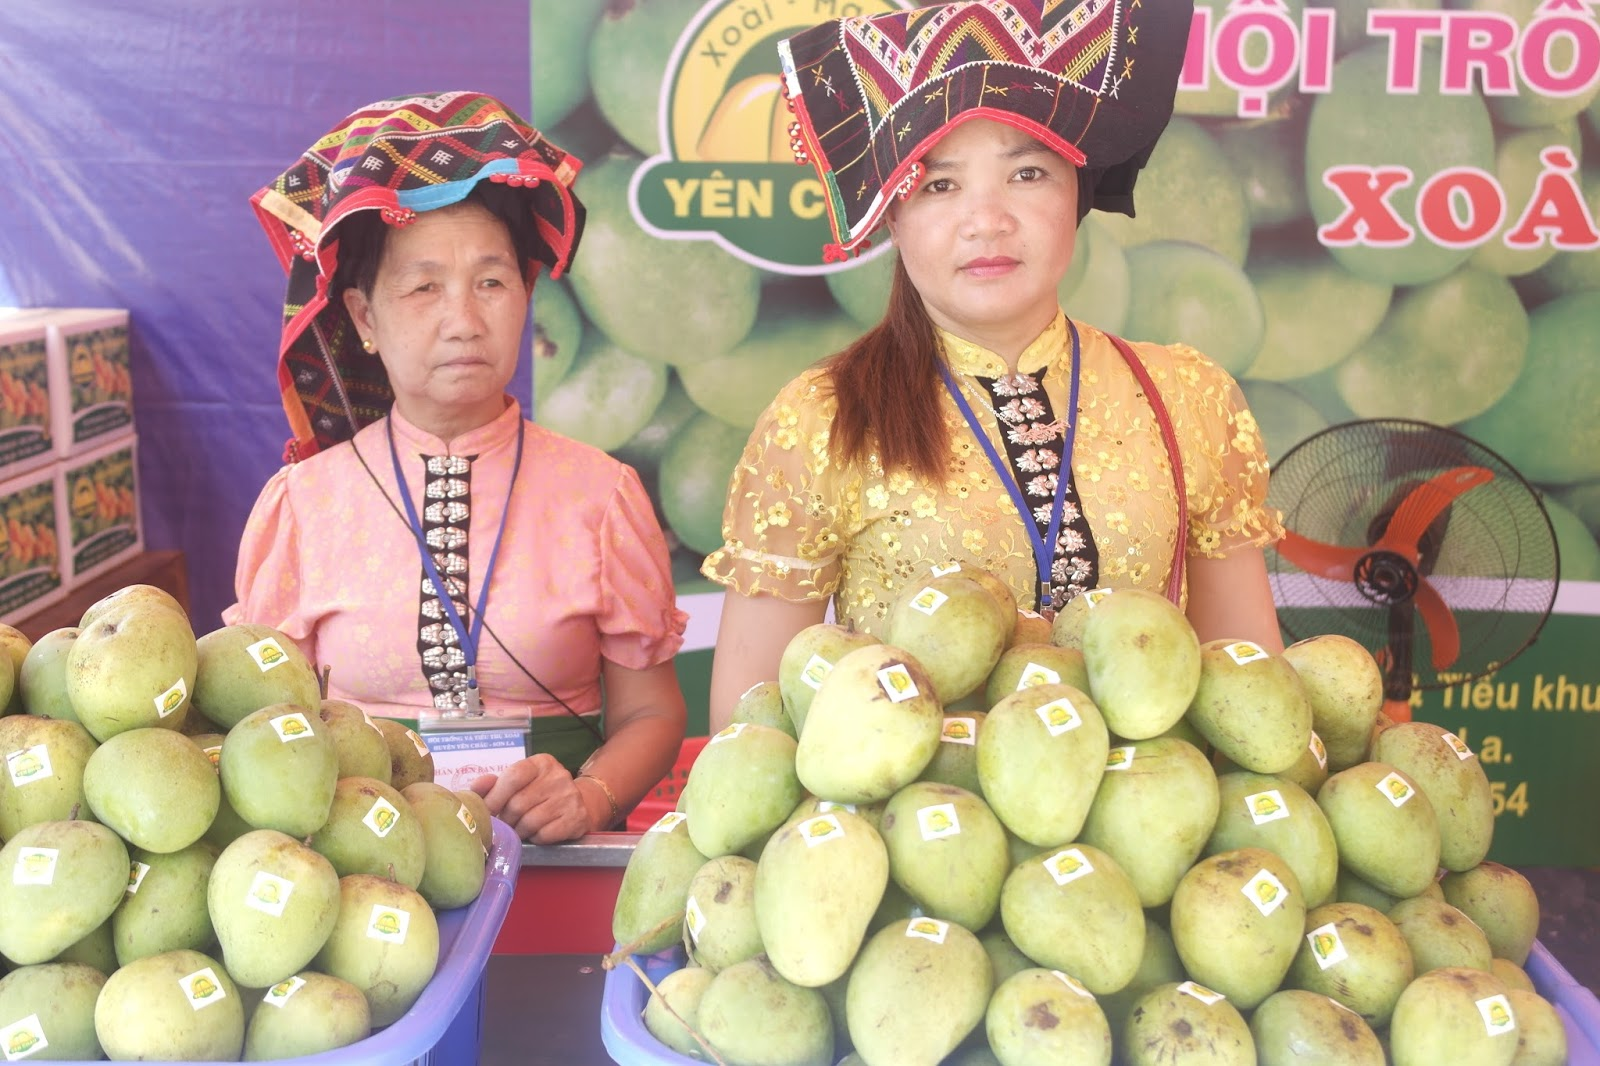 Son La farmers develop Yen Chau mango brand